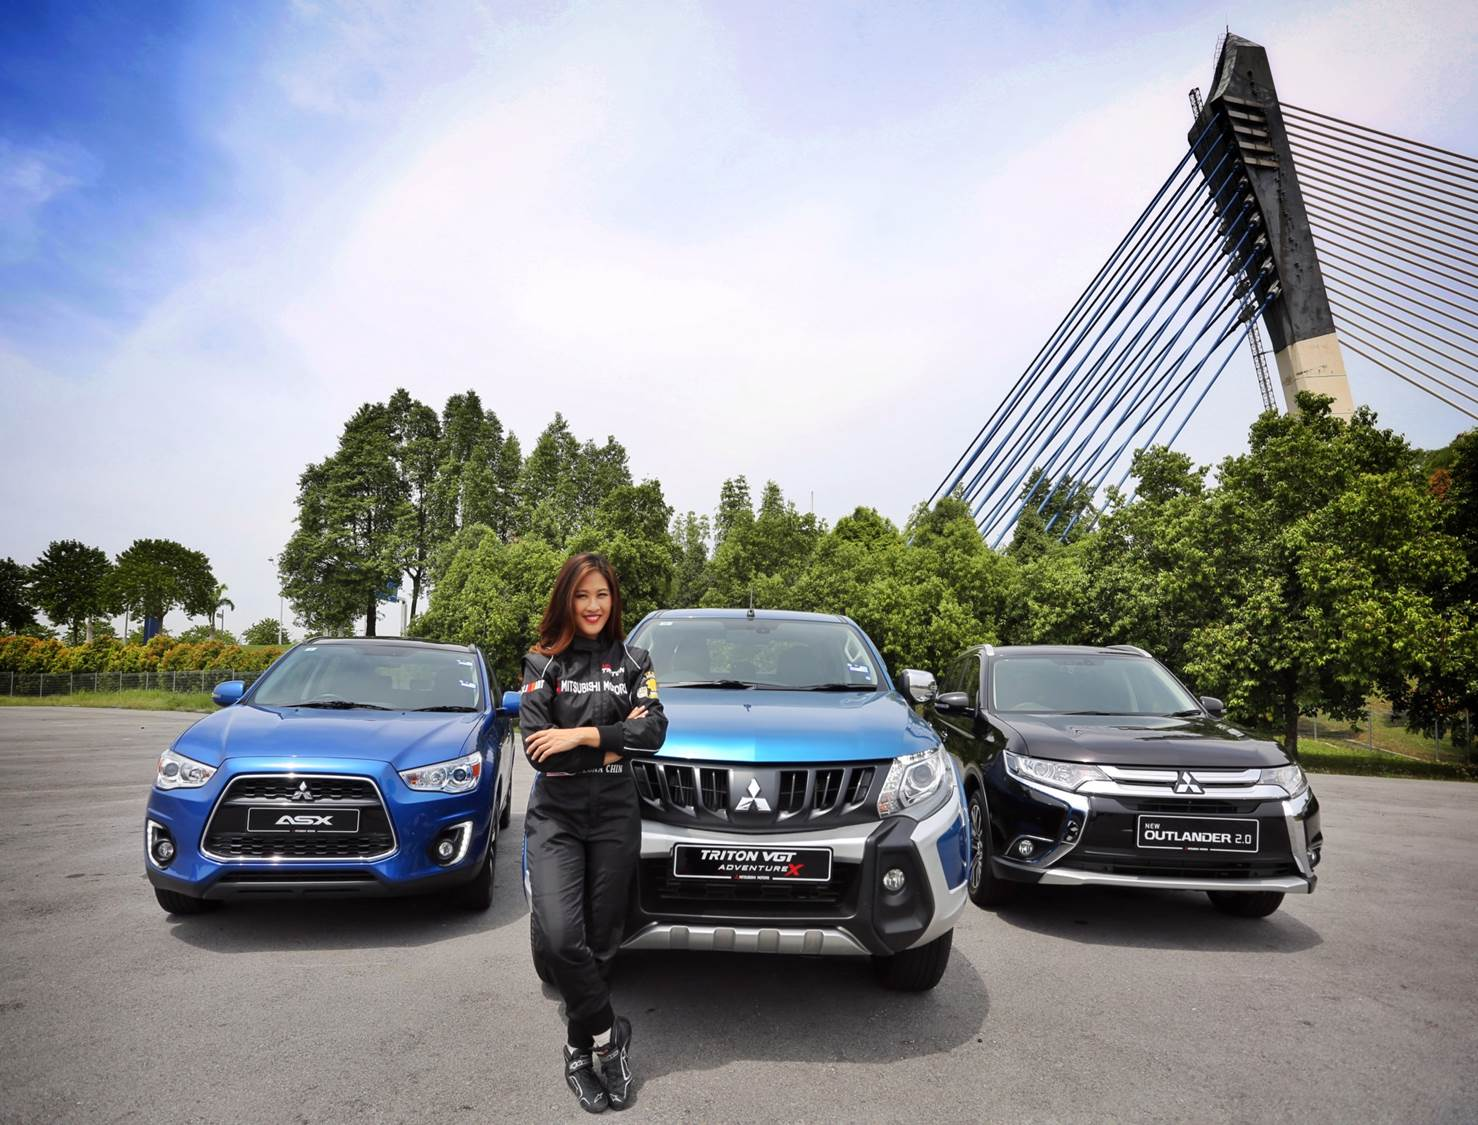 Malaysia Motorsports Athlete, Leona Chin as Brand Ambassador for MMM